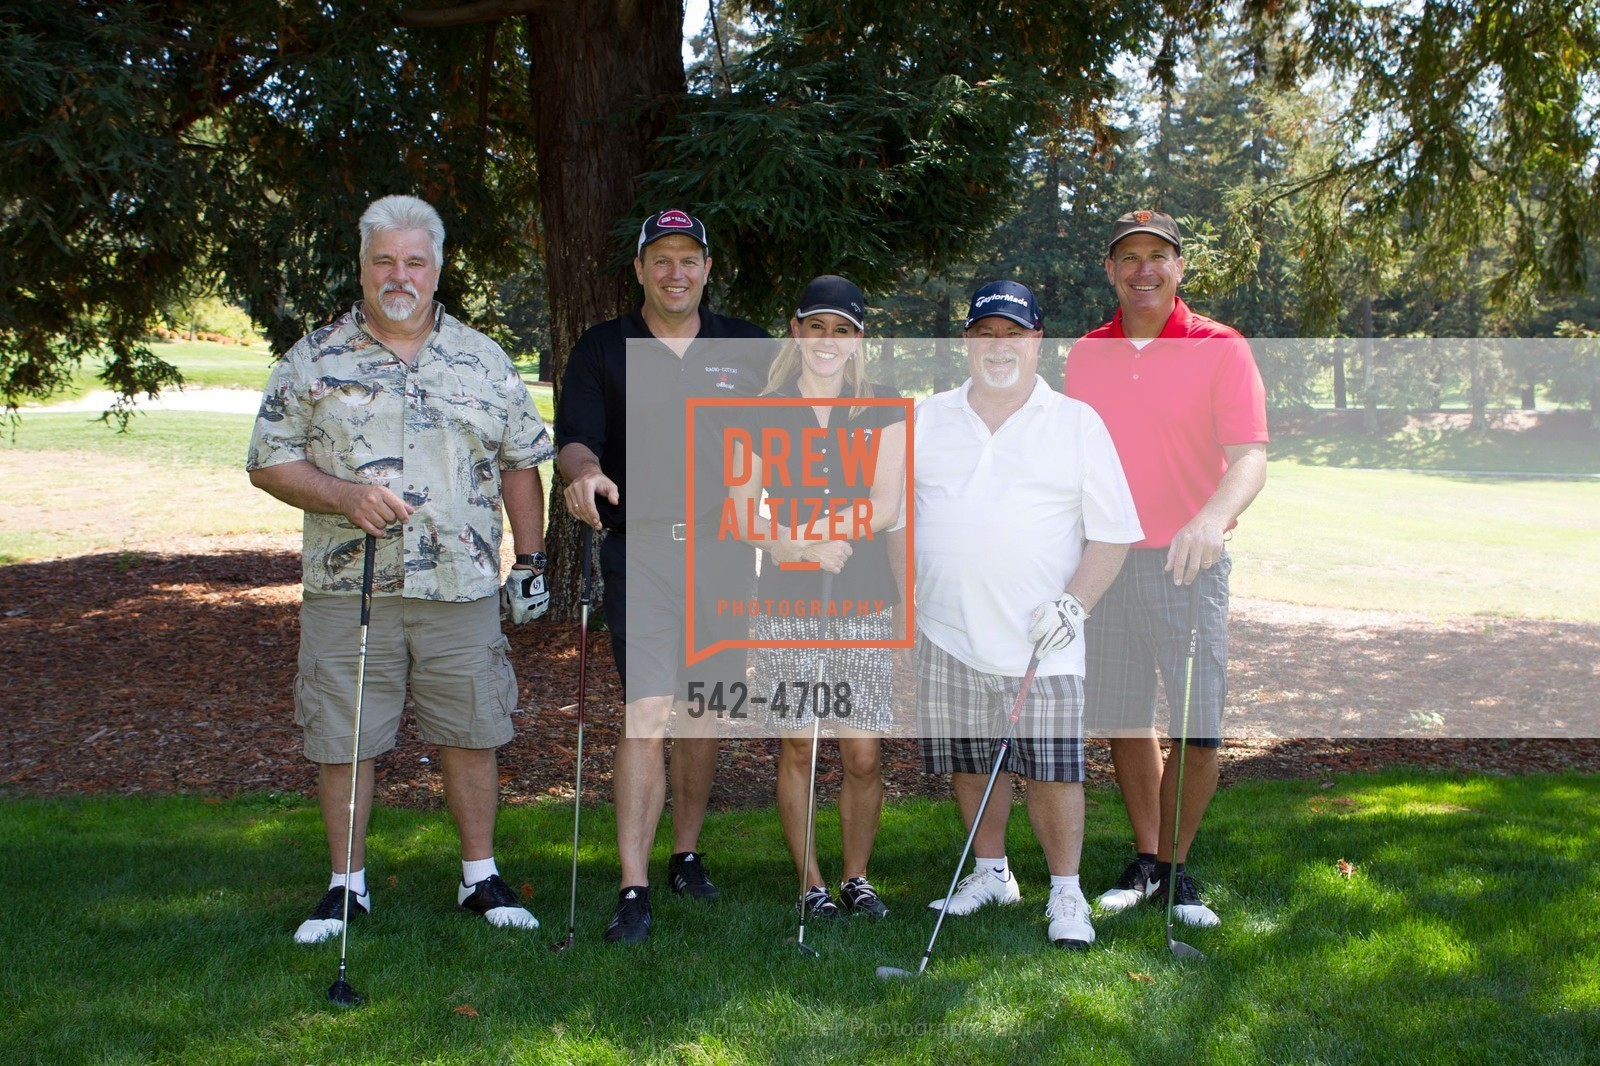 Chuck Sierer, Paul Donaldson, Tina Michelson, Scott Montgomery, Photo #542-4708